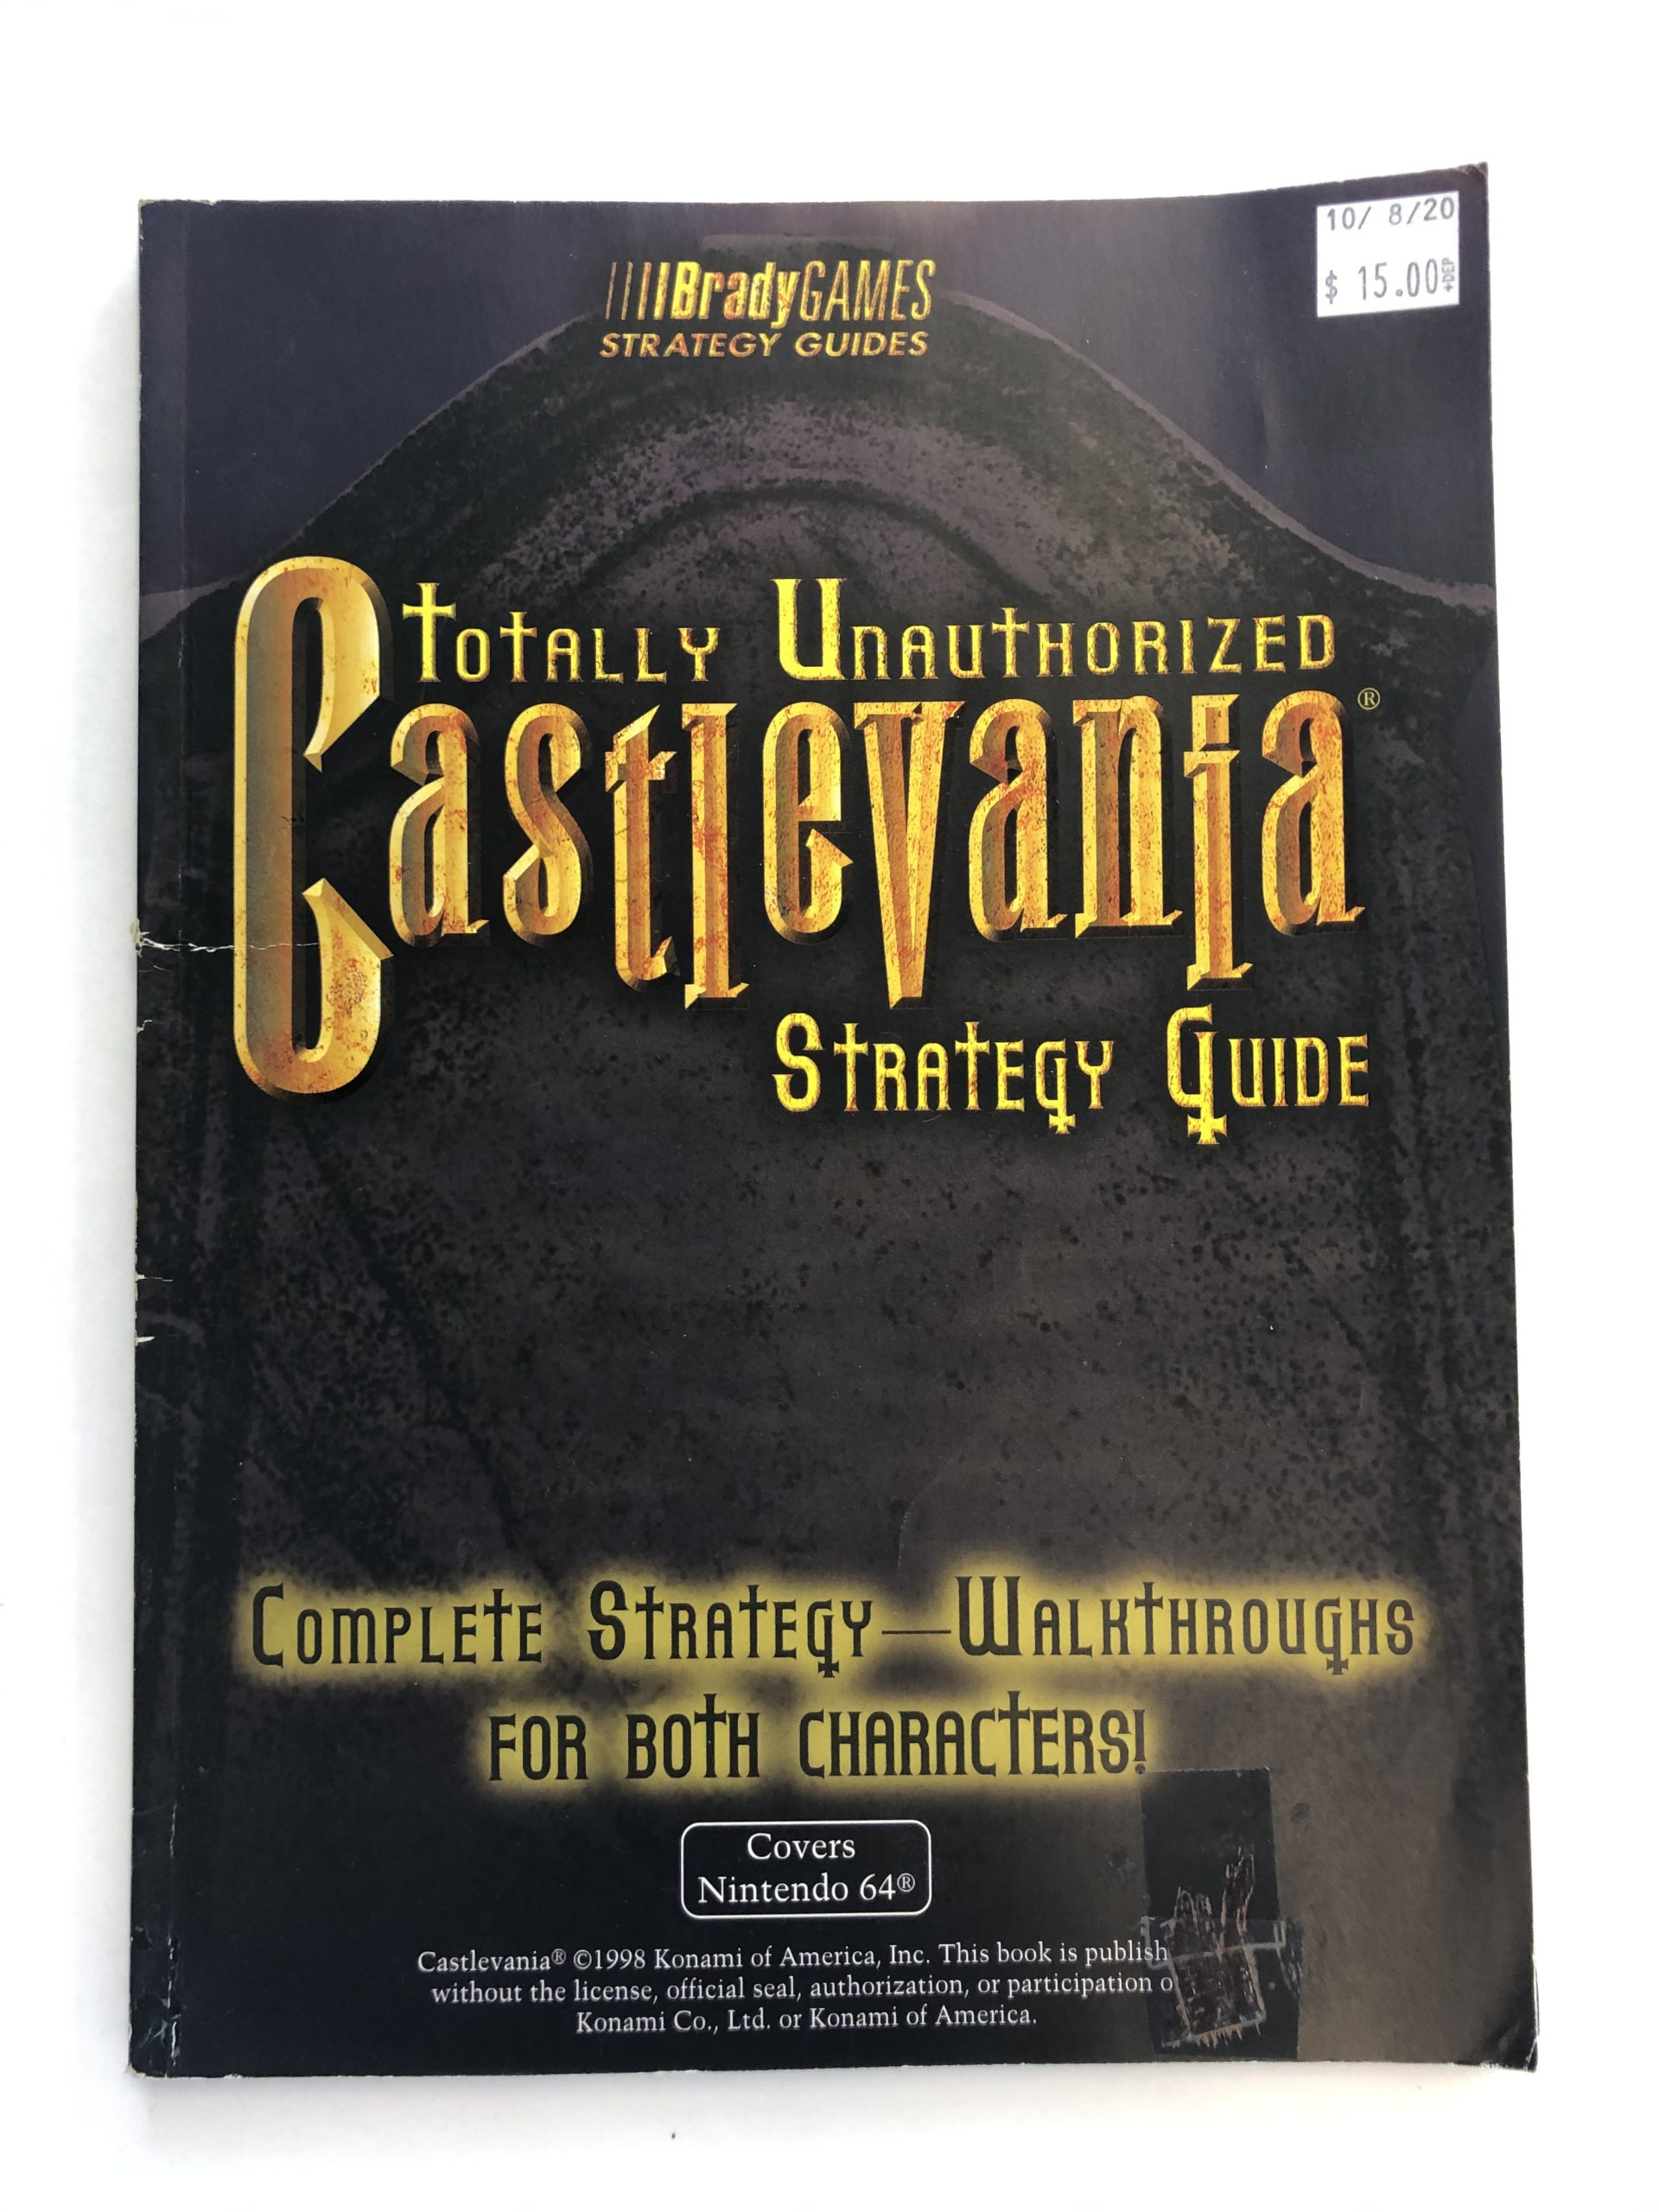 Totally Unauthorized Castlevania Guide Book